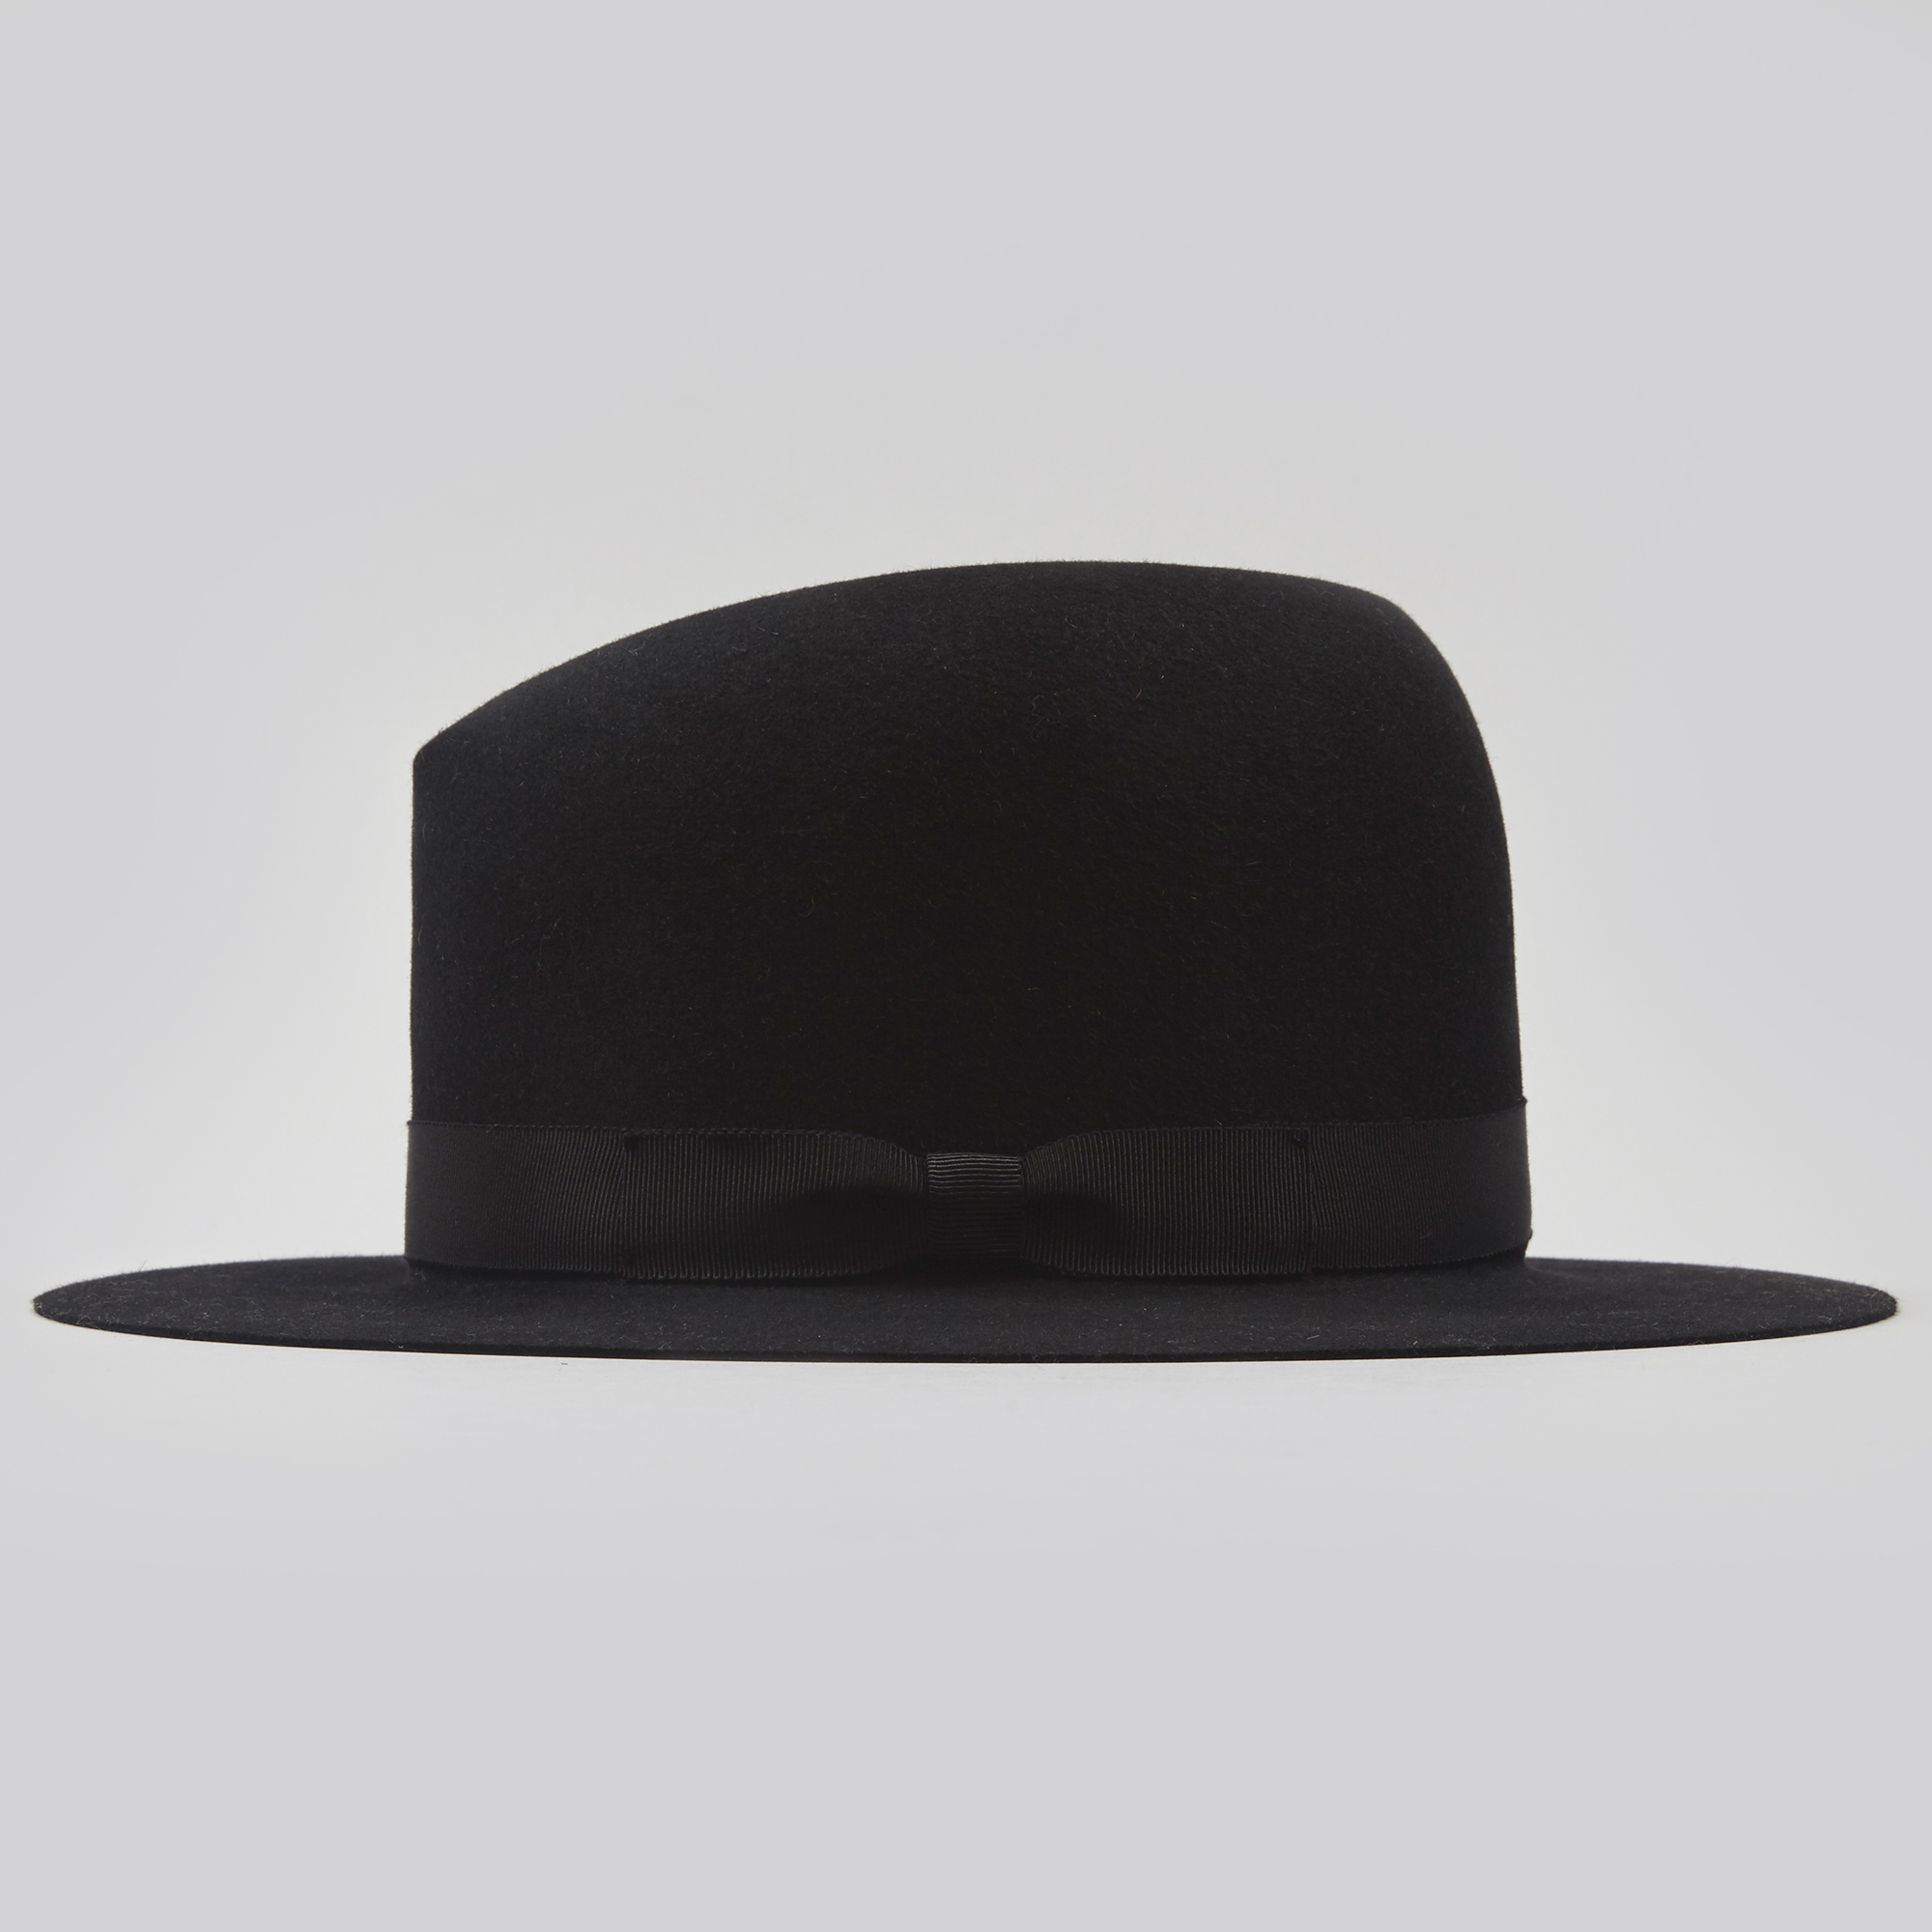 Neighborhood x Stetson Rabbit Fur Hat - Black 70240aa95b5